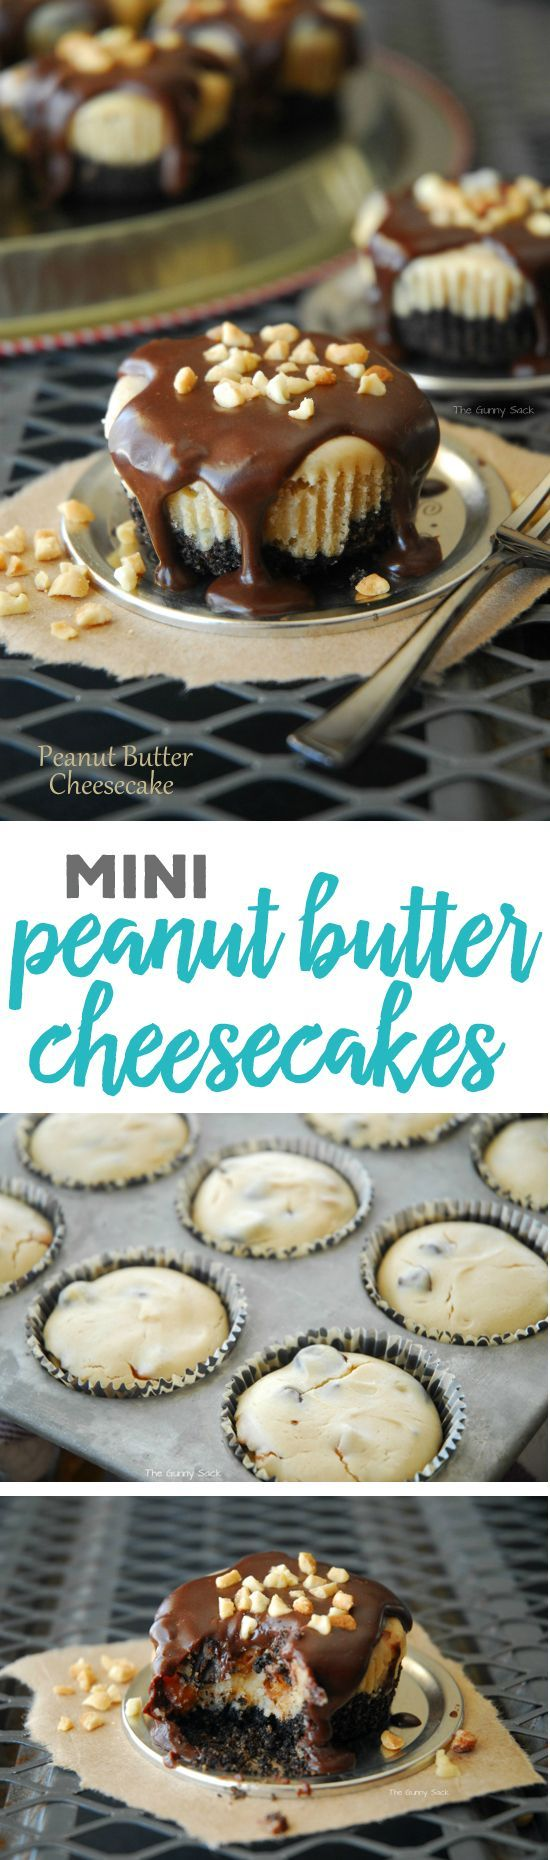 Mini Peanut Butter Cheesecakes Individual Servings Recipe via the Gunny Sack - These mini peanut butter cheesecakes drizzled with chocolate and sprinkled with chopped peanuts are a lot of goodness packed into a muffin sized dessert! With a peanut butter Oreo crust, this easy cheesecake recipe is delicious from top to bottom.